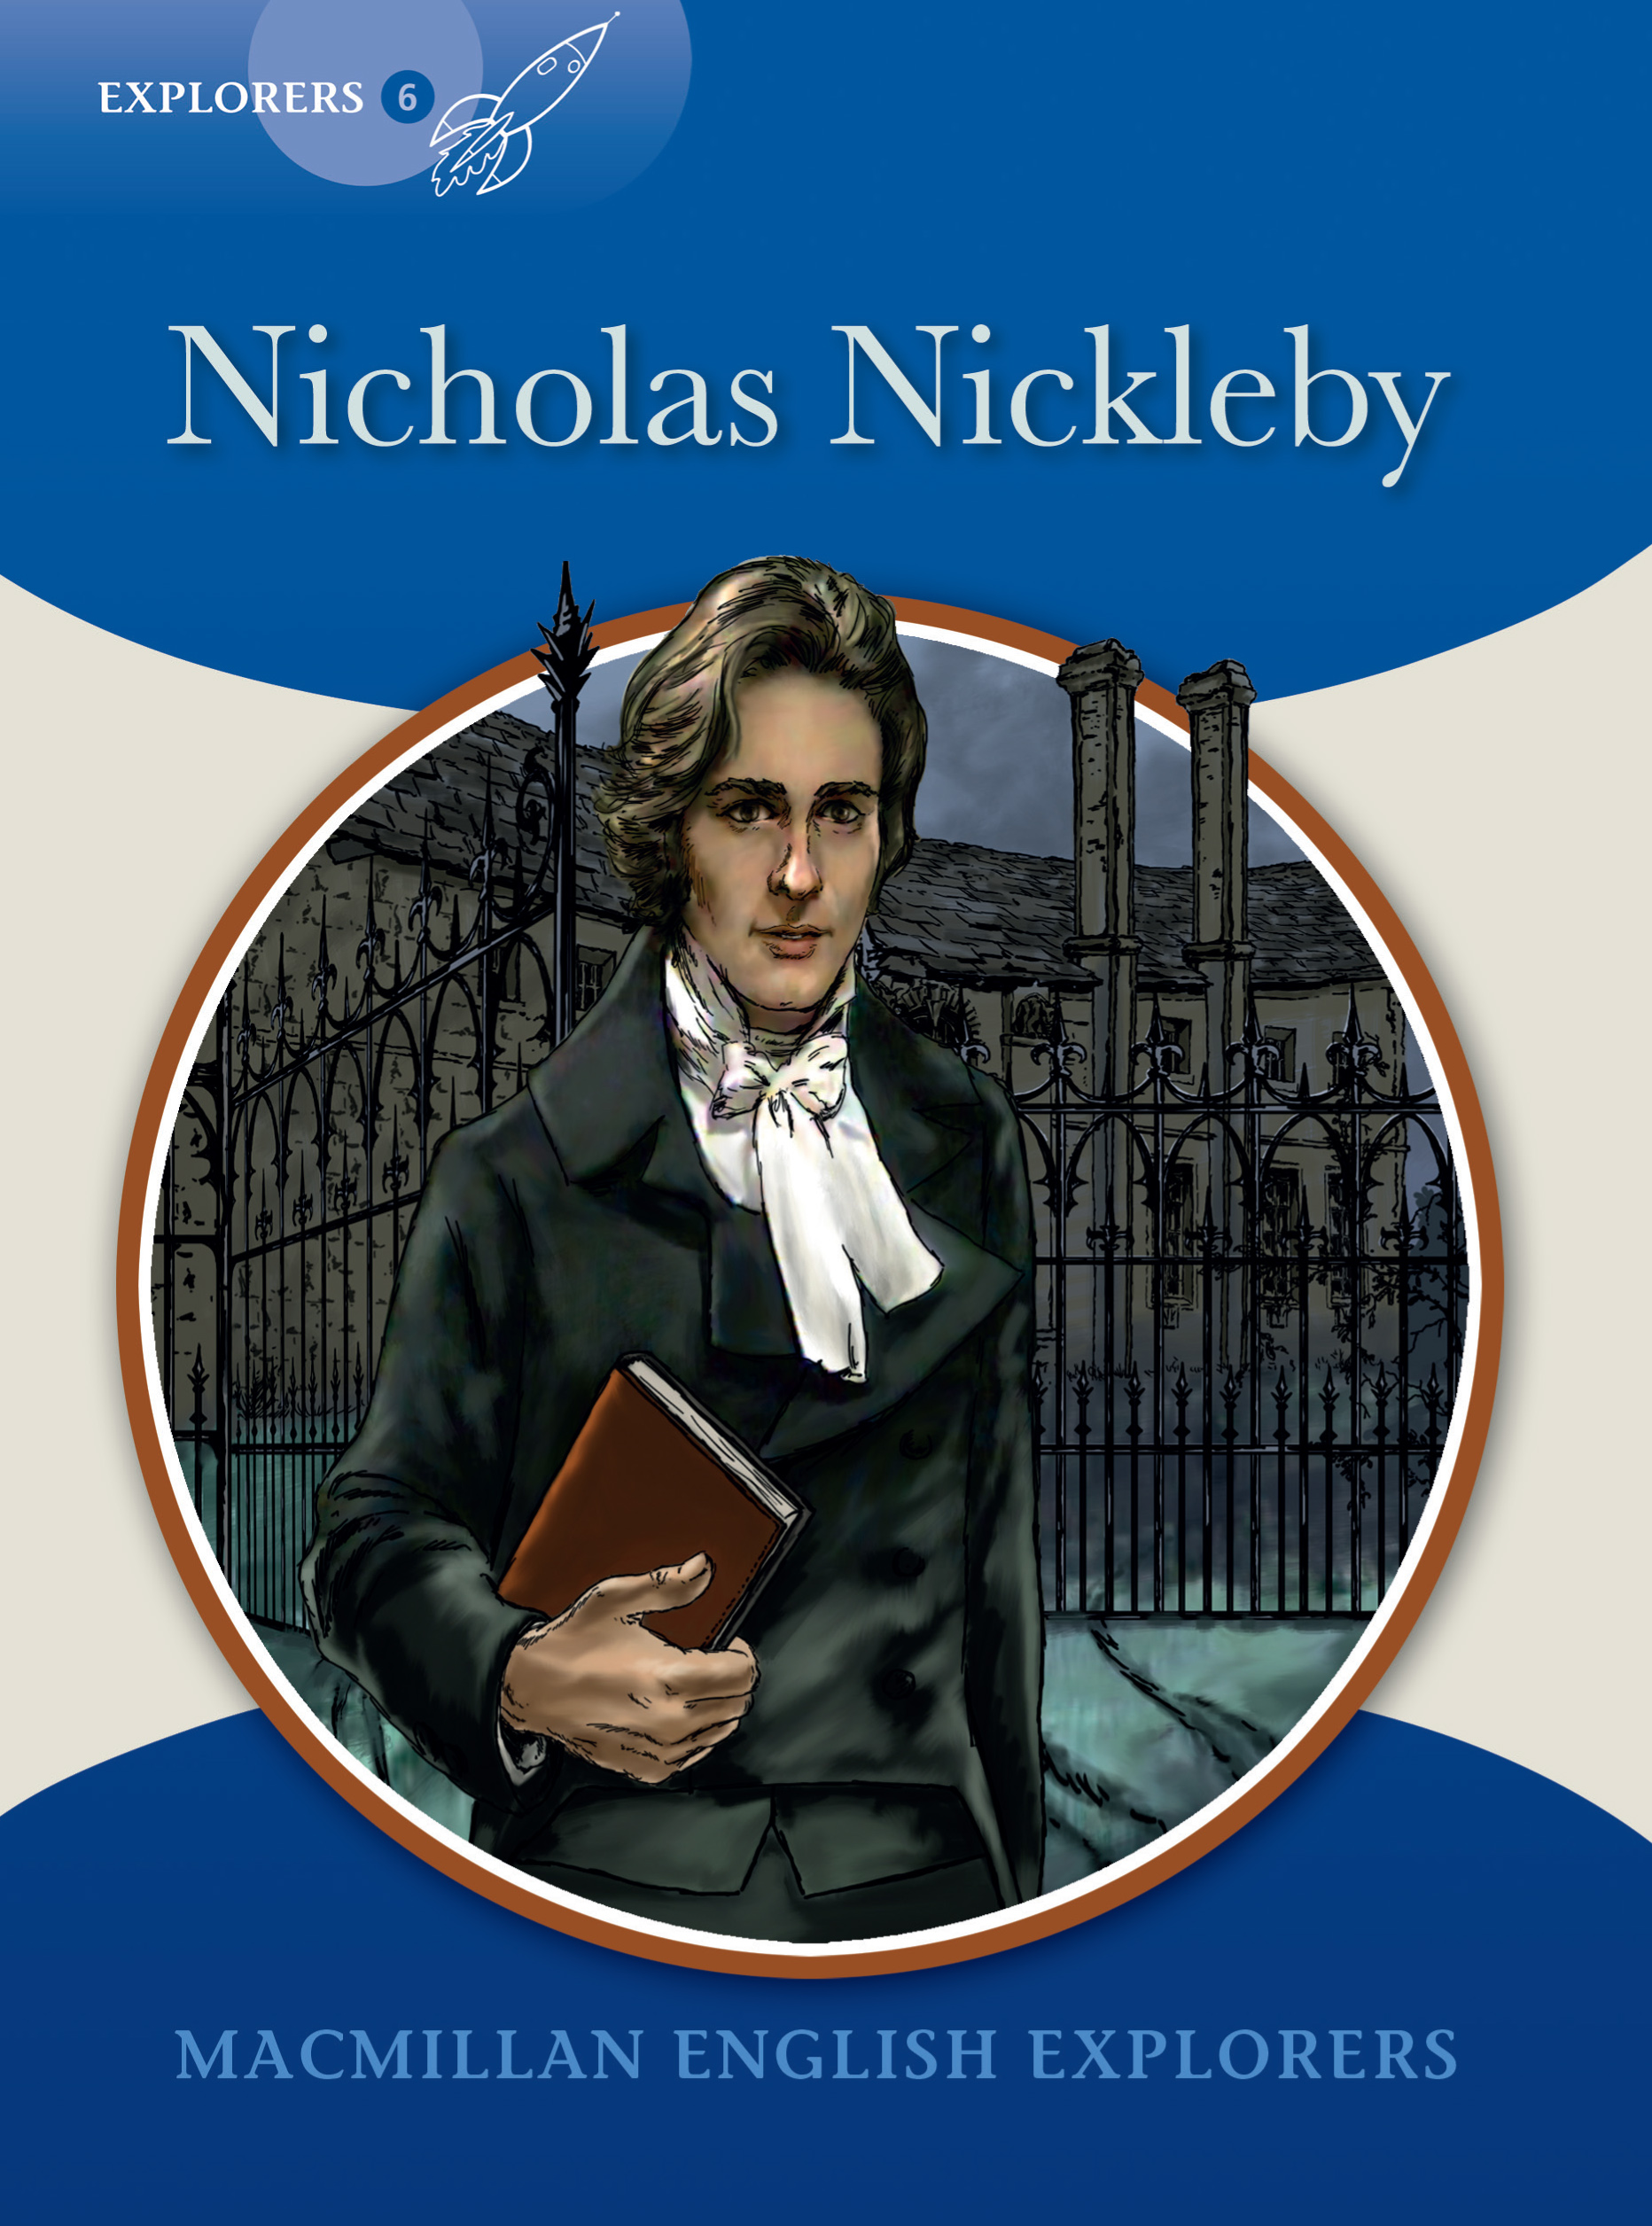 Explorers 6: Nicholas Nickleby